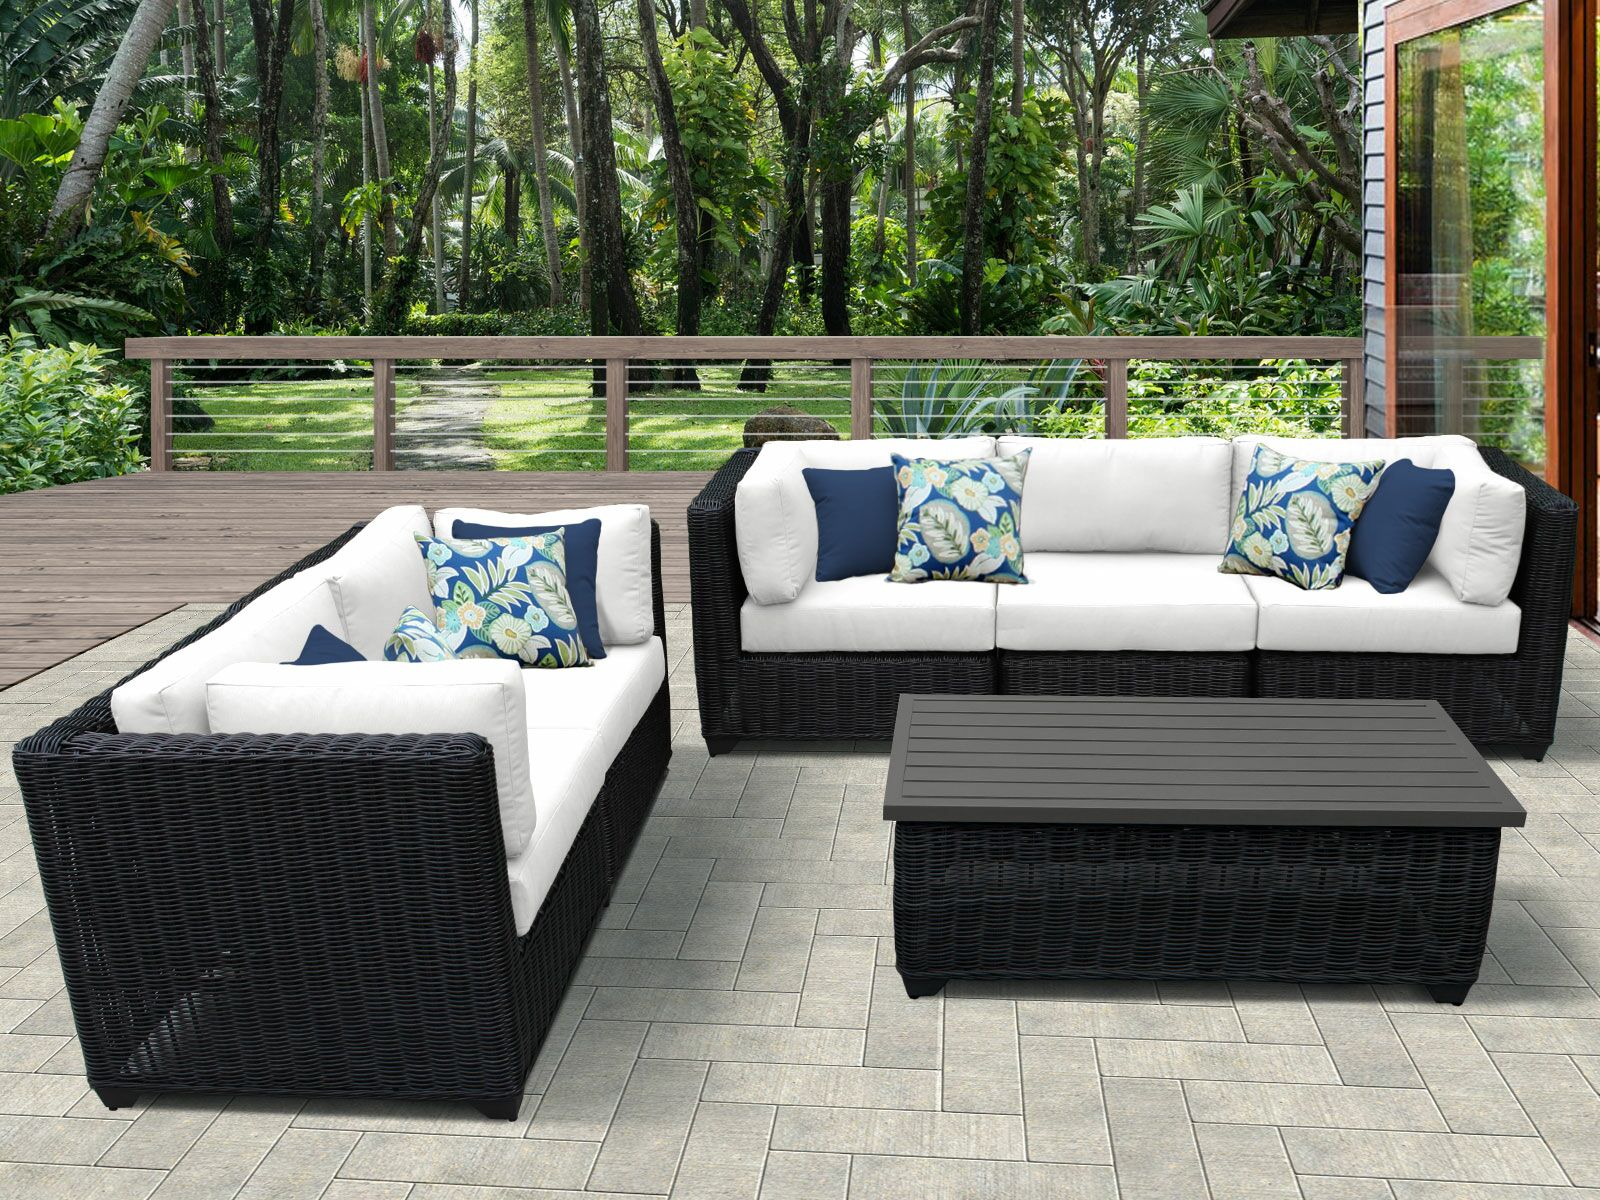 Eldredge 6 Piece Sectional Set with Cushions Color: White